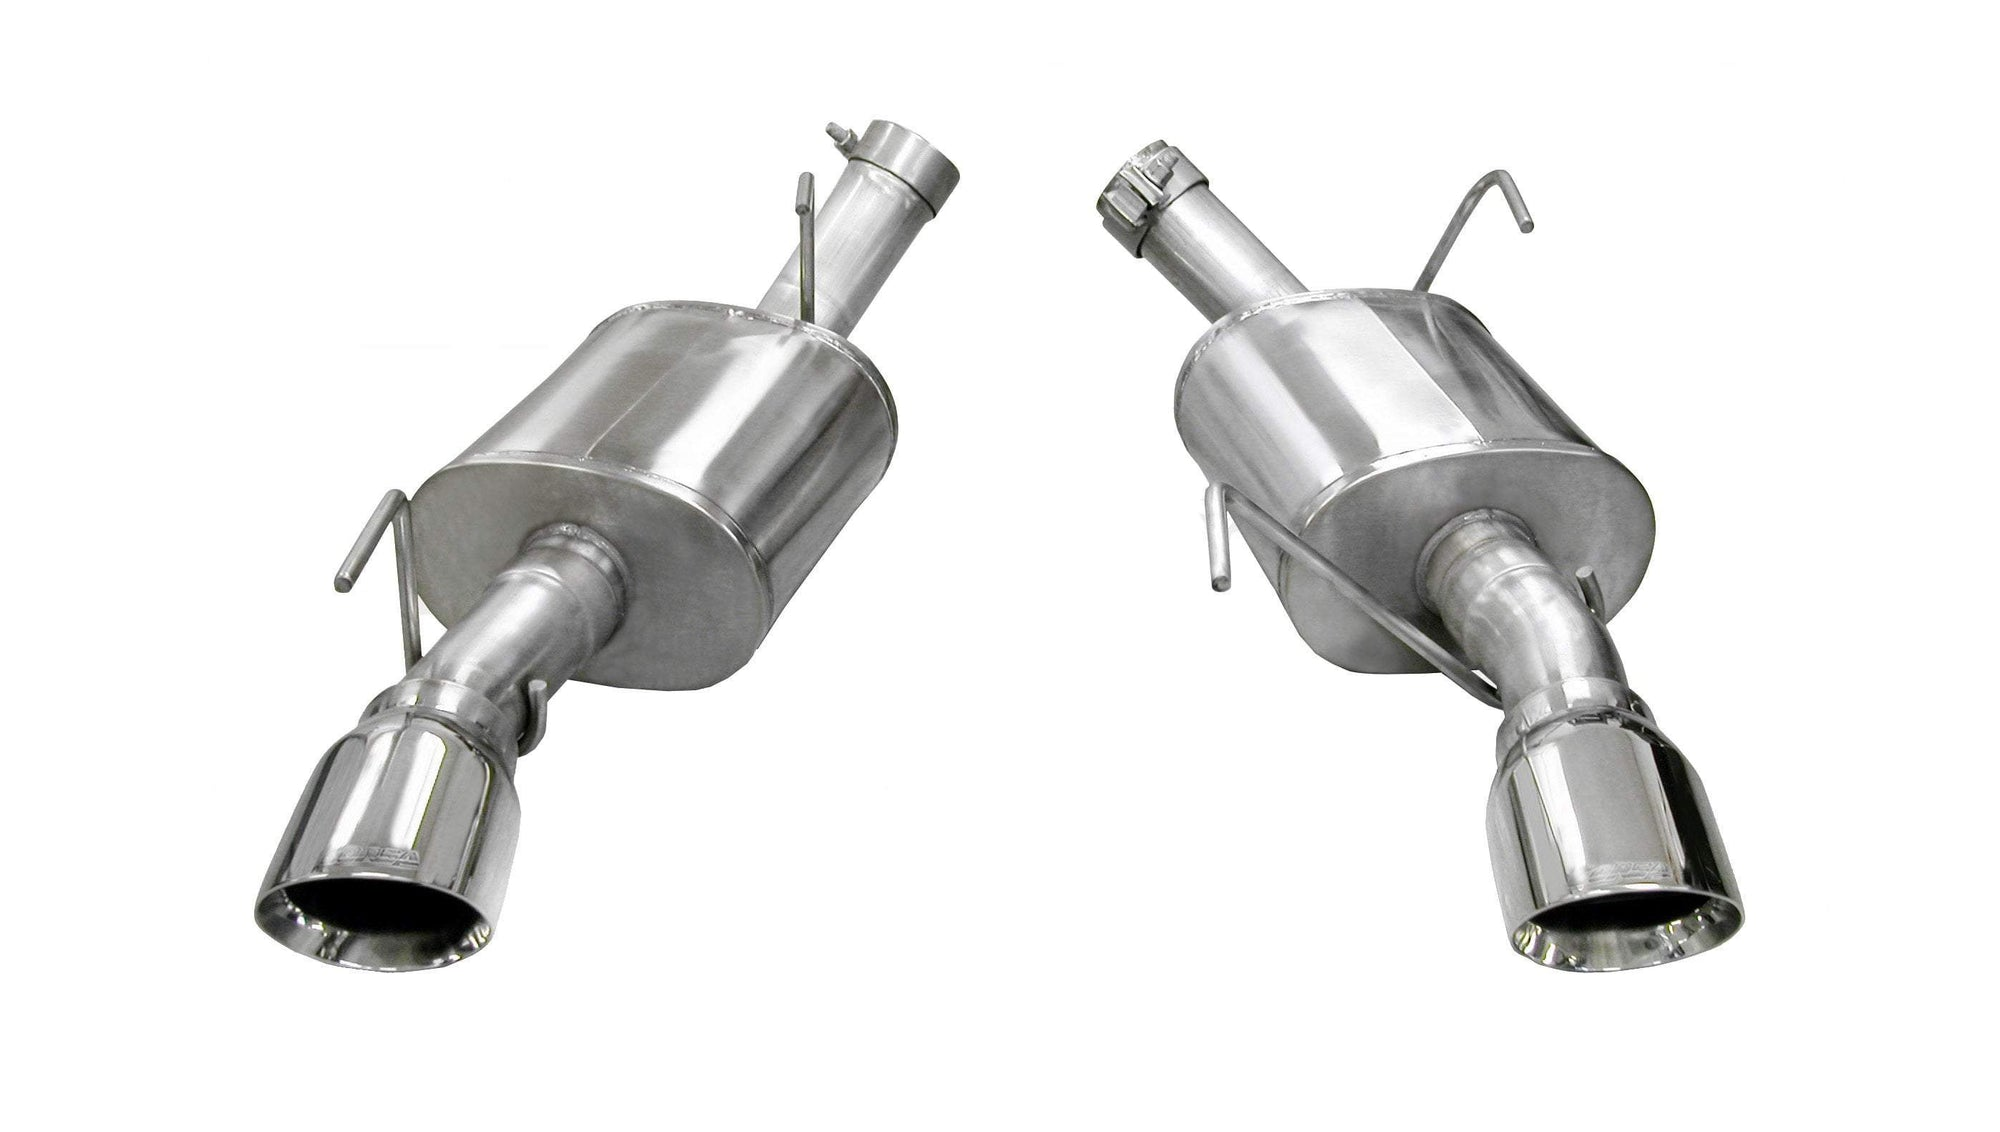 "CORSA PERFORMANCE Axle-Back Exhaust Polished / XTREME / Dual Rear - Single 4.0in 2005-2010 Ford Mustang GT, GT500, 2.5"" Dual Rear Exit Axle-Back Exhaust System with 4.0"" Tips (14314) Xtreme Sound Level"